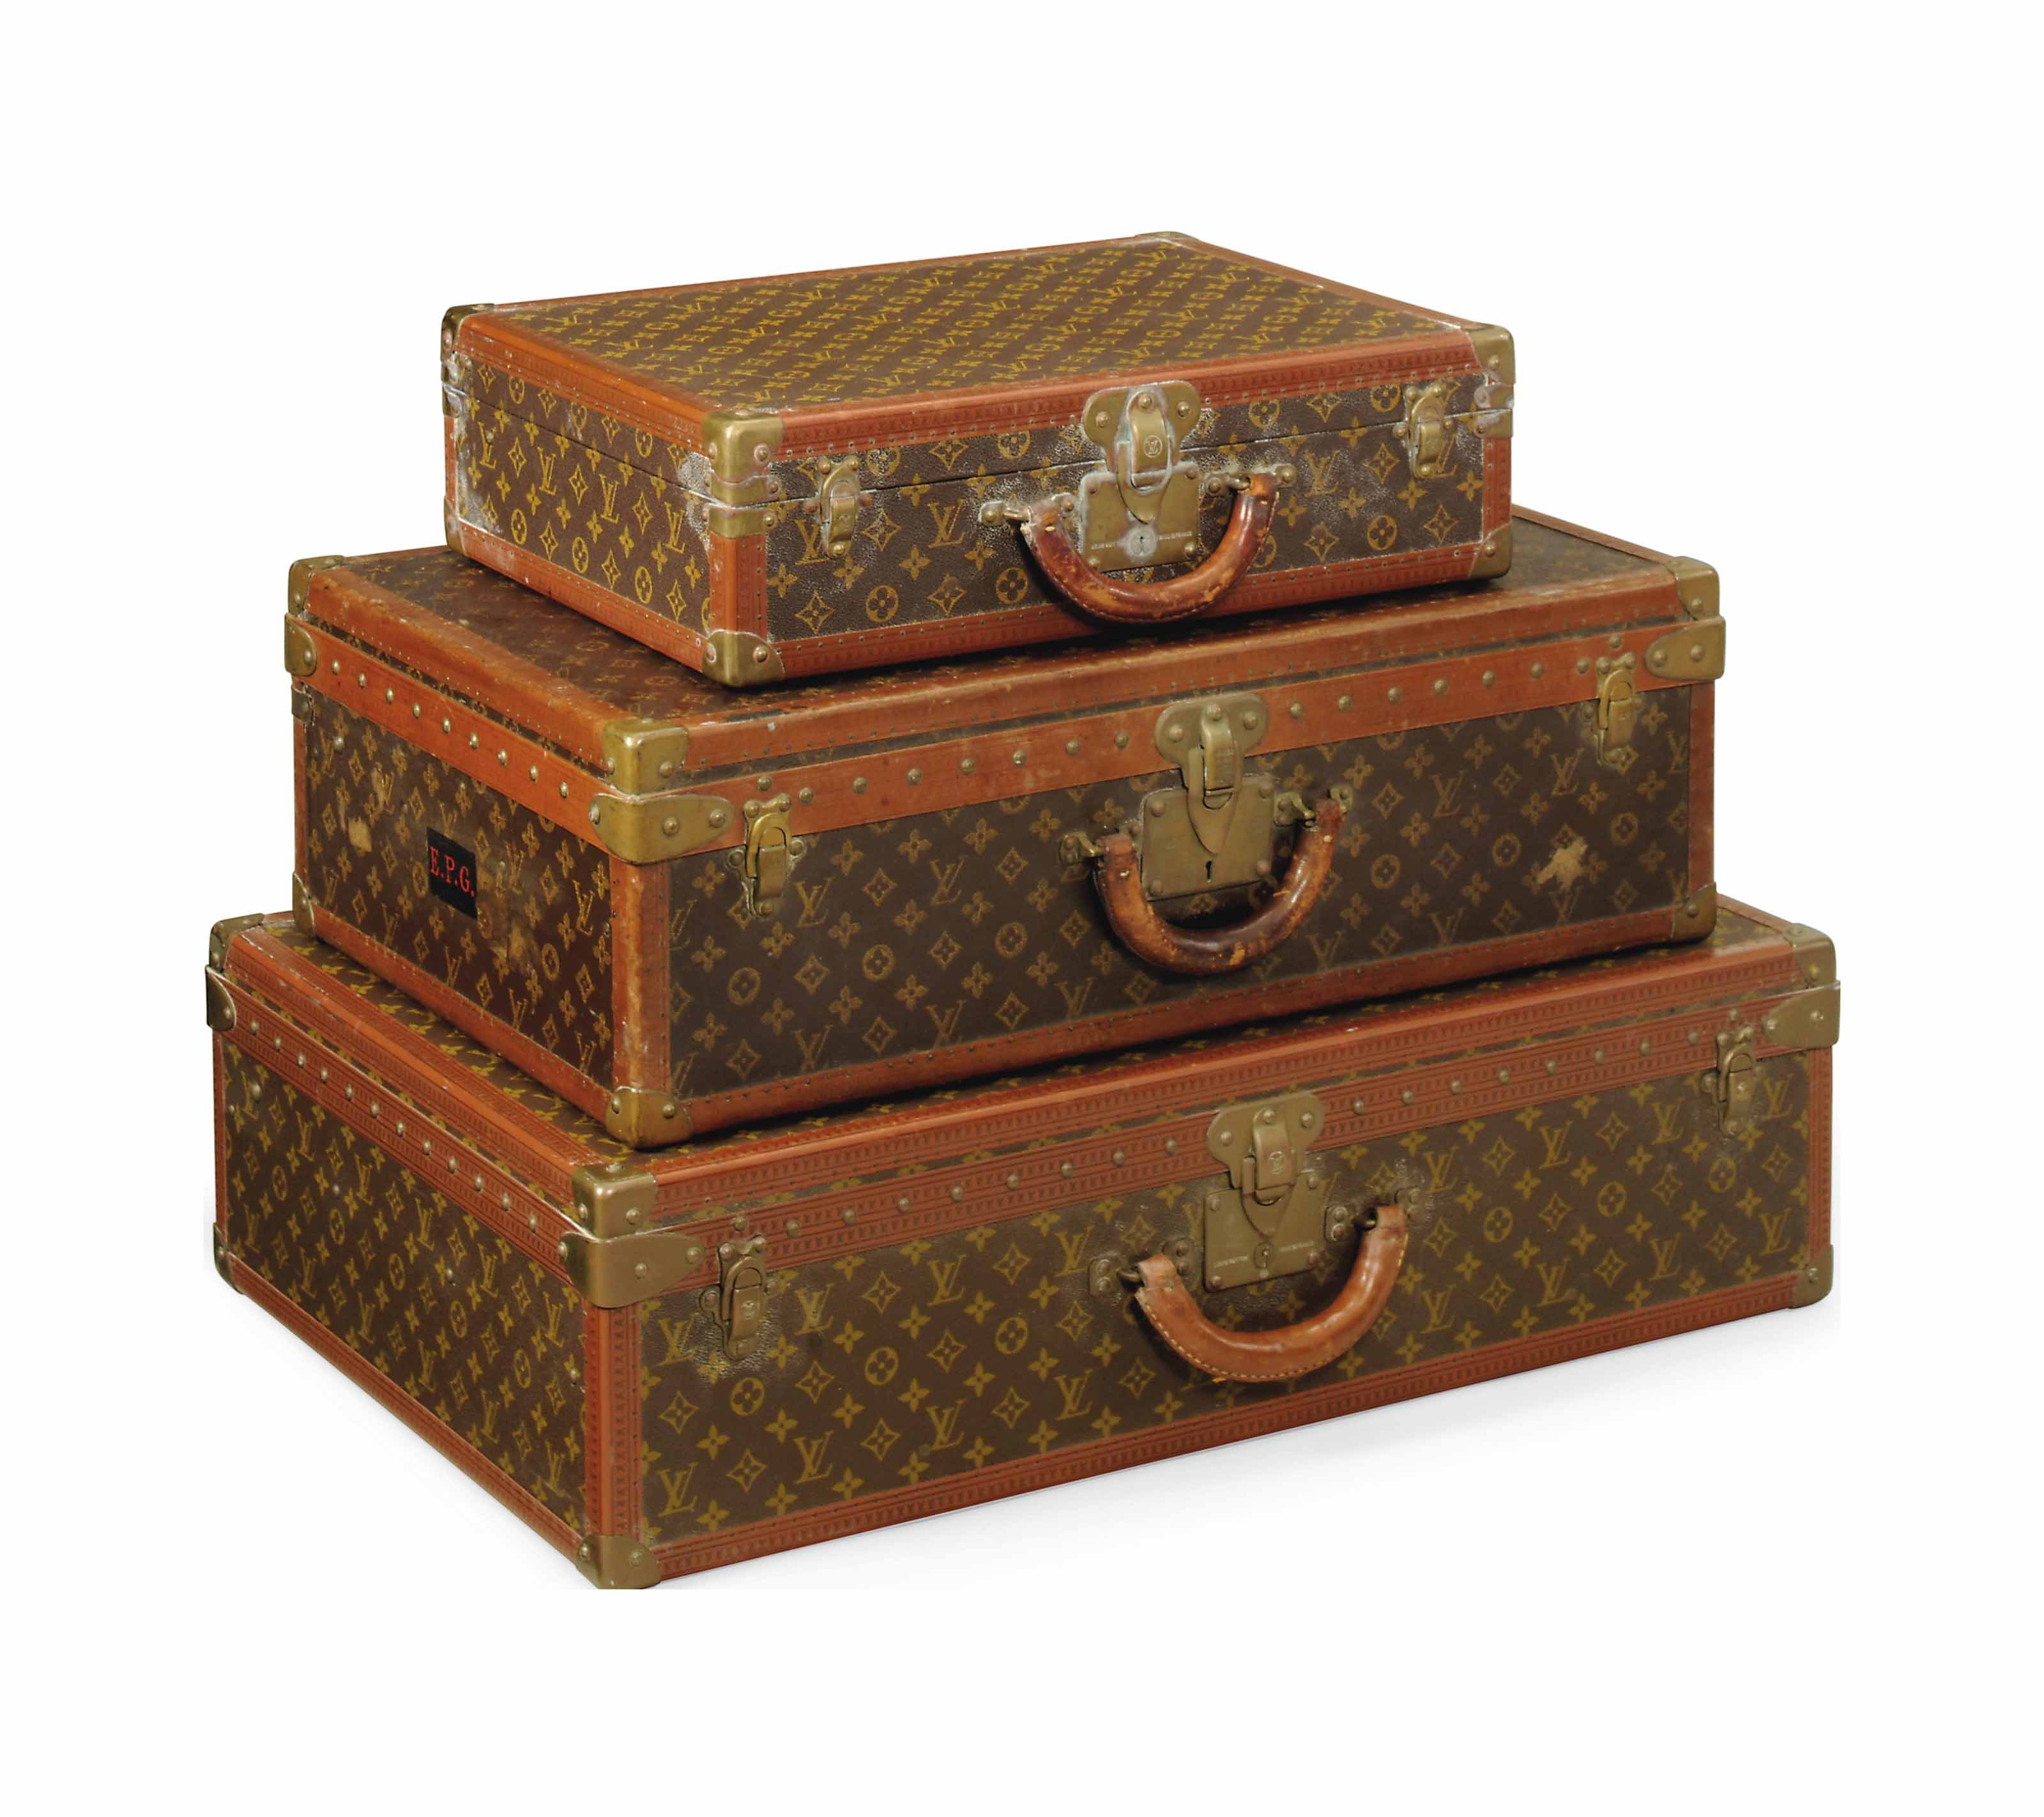 THREE HARD-SIDED SUITCASES IN